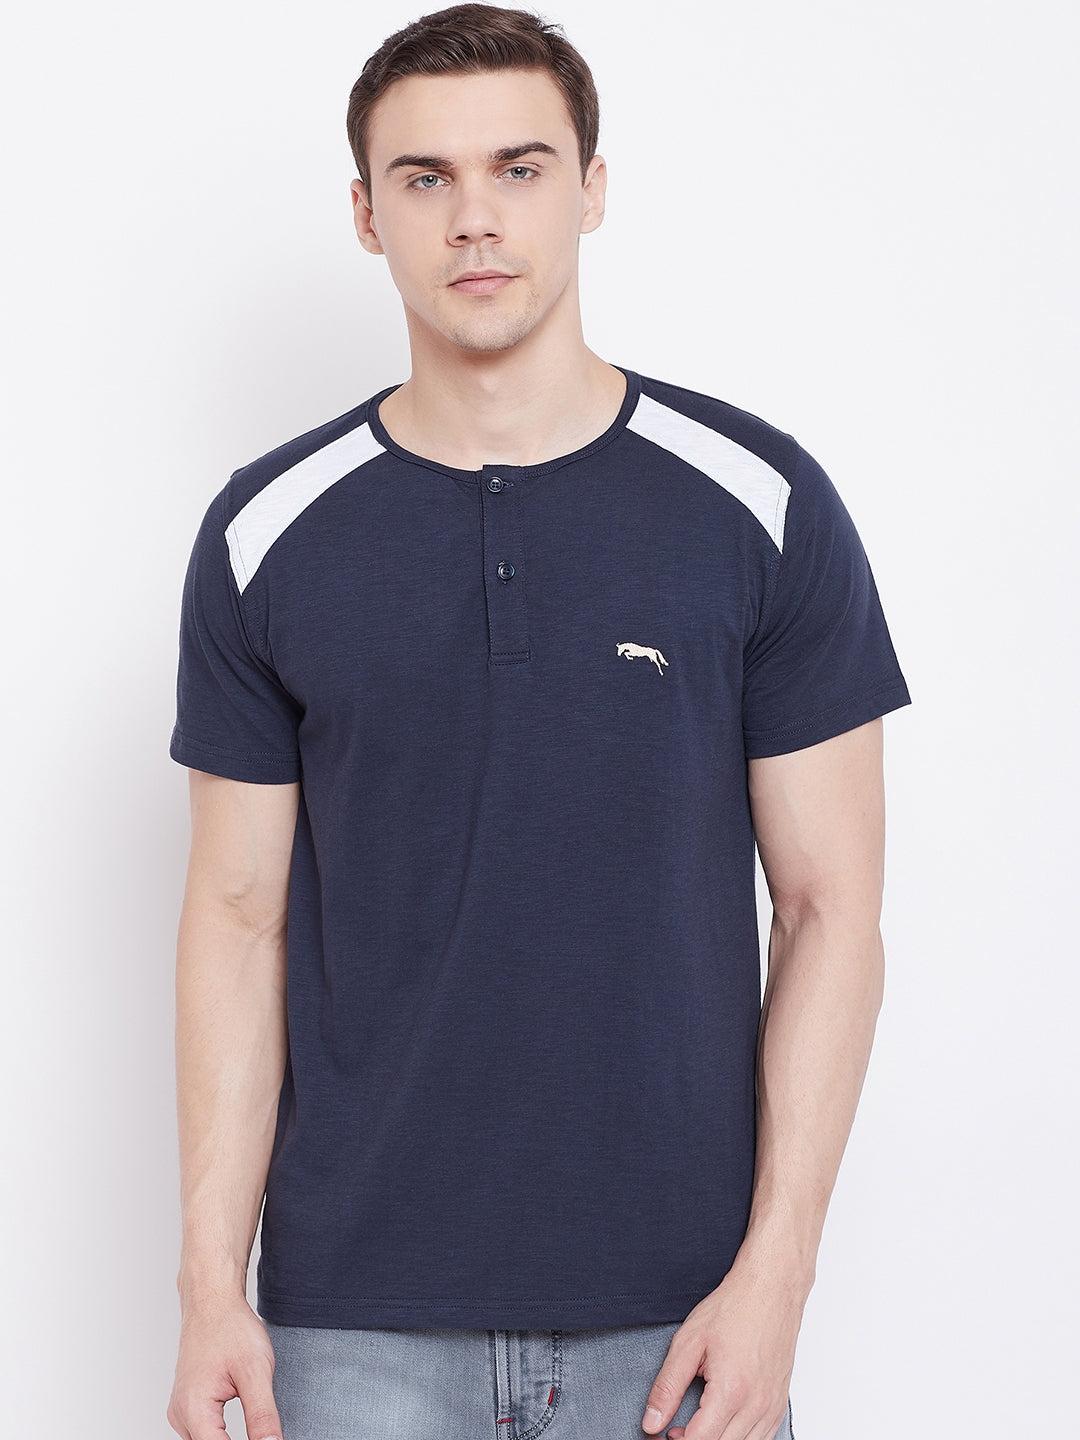 JUMP USA Men Navy Blue Solid Round Neck T-shirt - JUMP USA